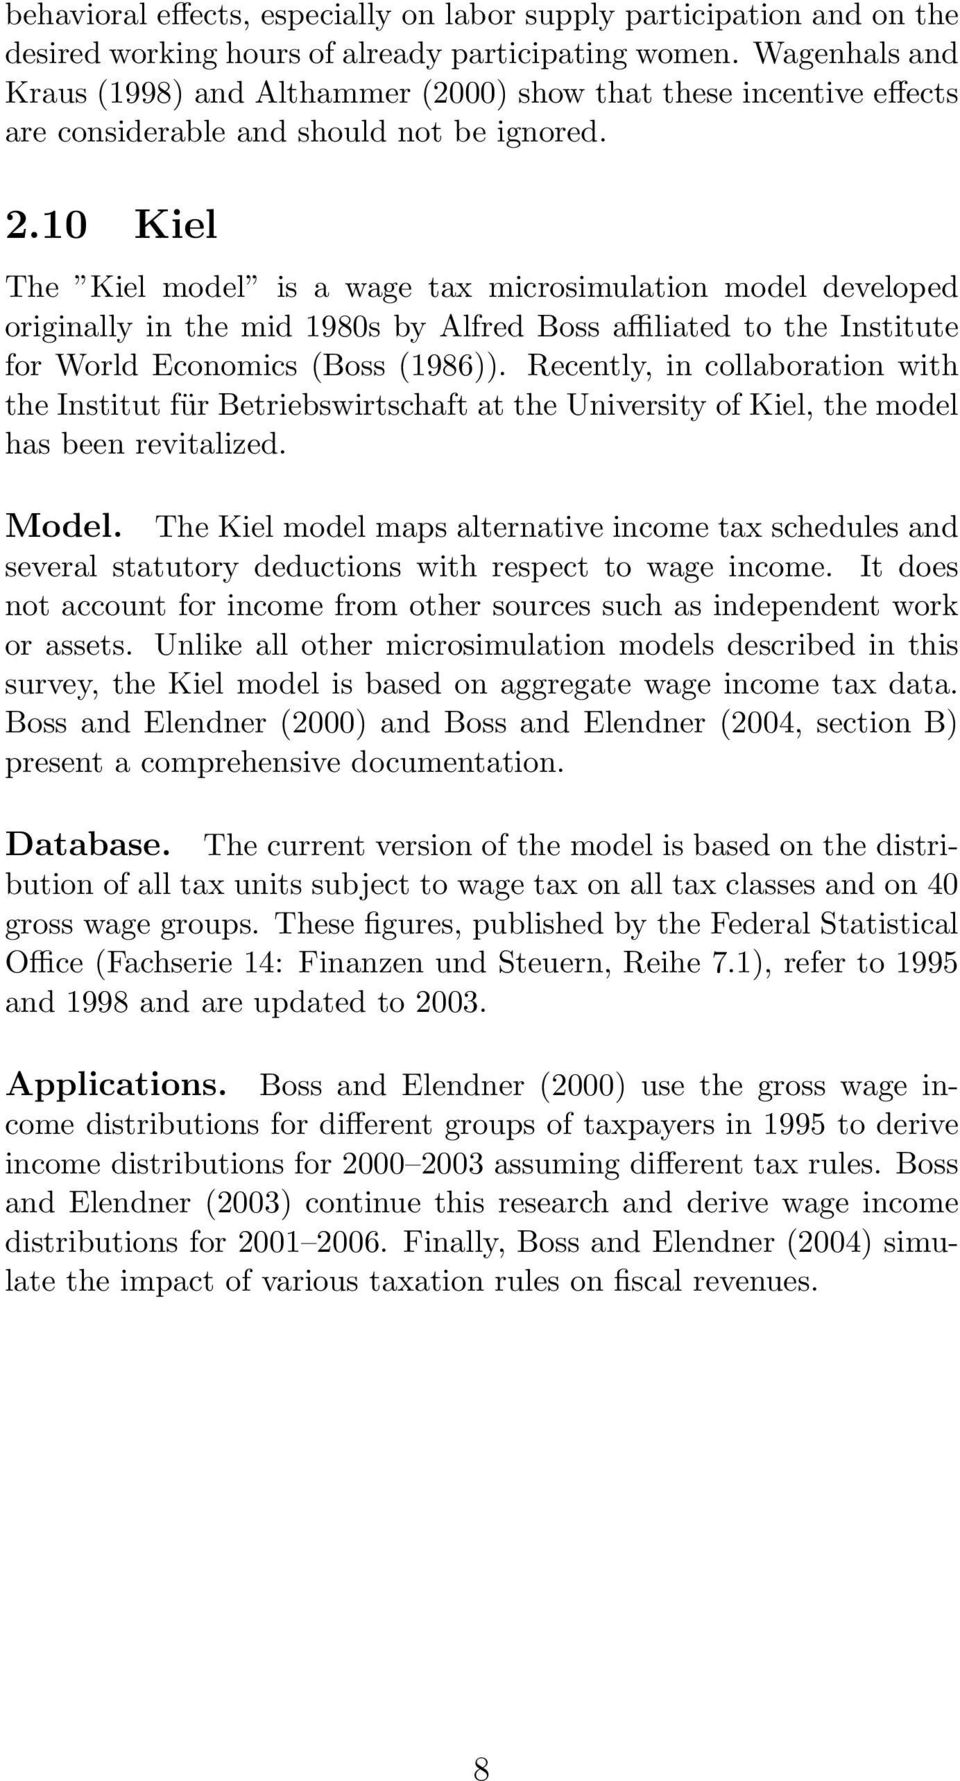 10 Kiel The Kiel model is a wage tax microsimulation model developed originally in the mid 1980s by Alfred Boss affiliated to the Institute for World Economics (Boss (1986)).